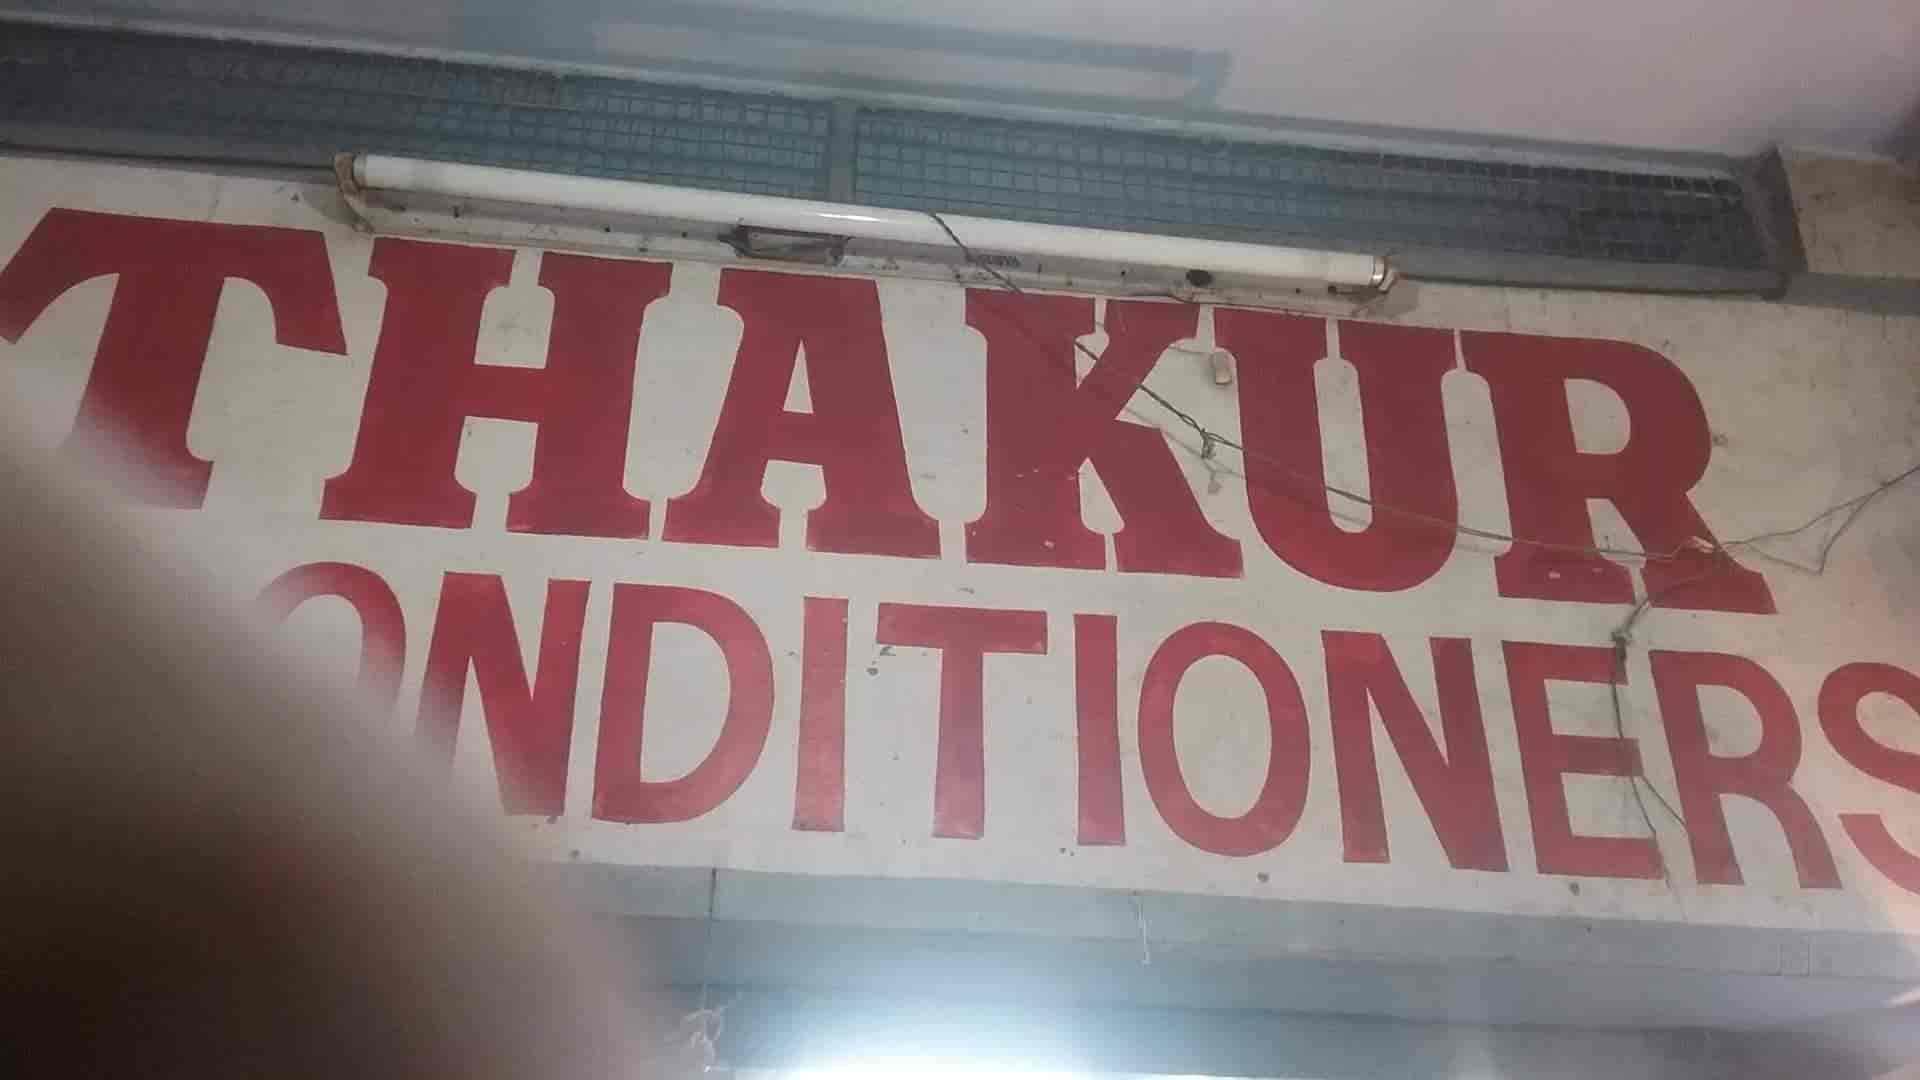 Thakur AIR Conditioners, Sector 37d - Electronic Good Repair